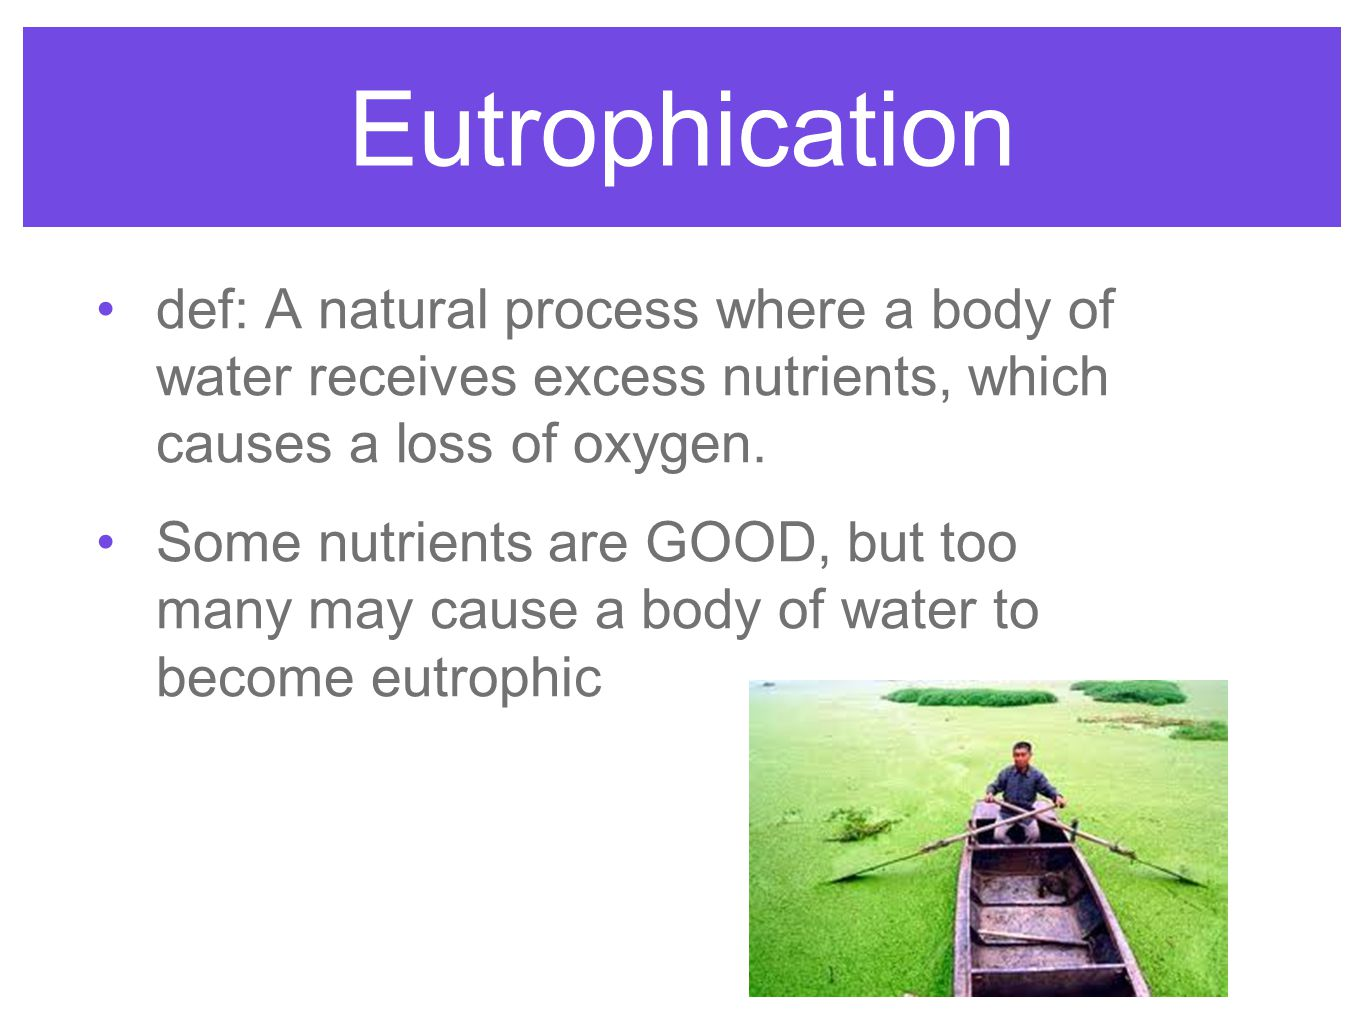 Eutrophication def: A natural process where a body of water receives excess nutrients, which causes a loss of oxygen.